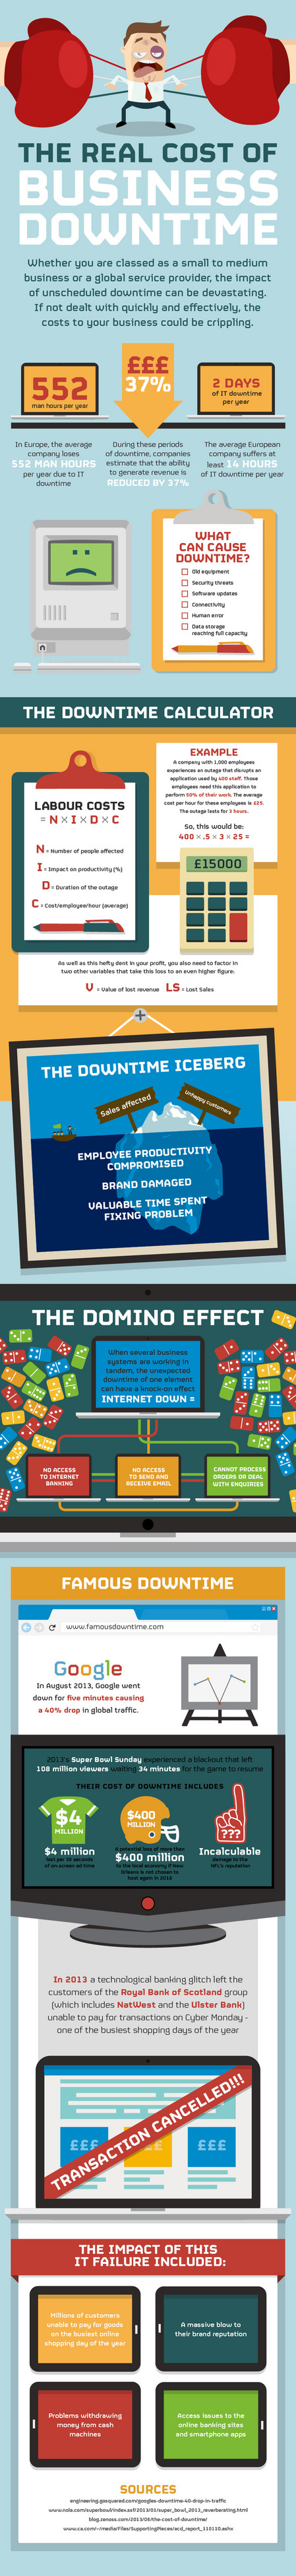 The Real Cost of Business Downtime Infographic.jpg